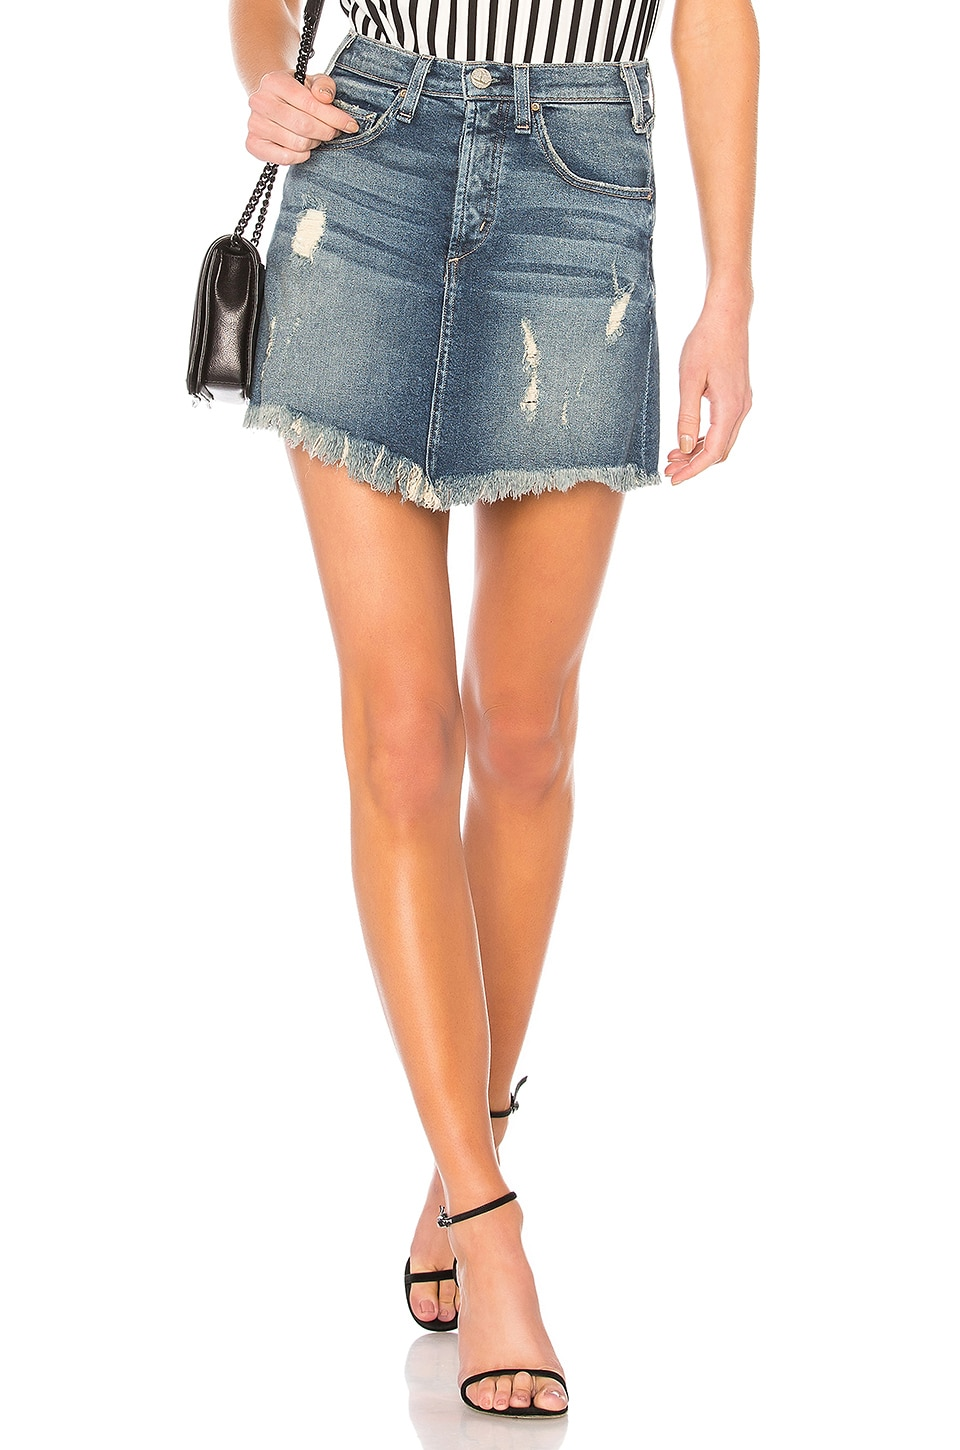 Mcguire IZABEL HIGH RISE MINI SKIRT